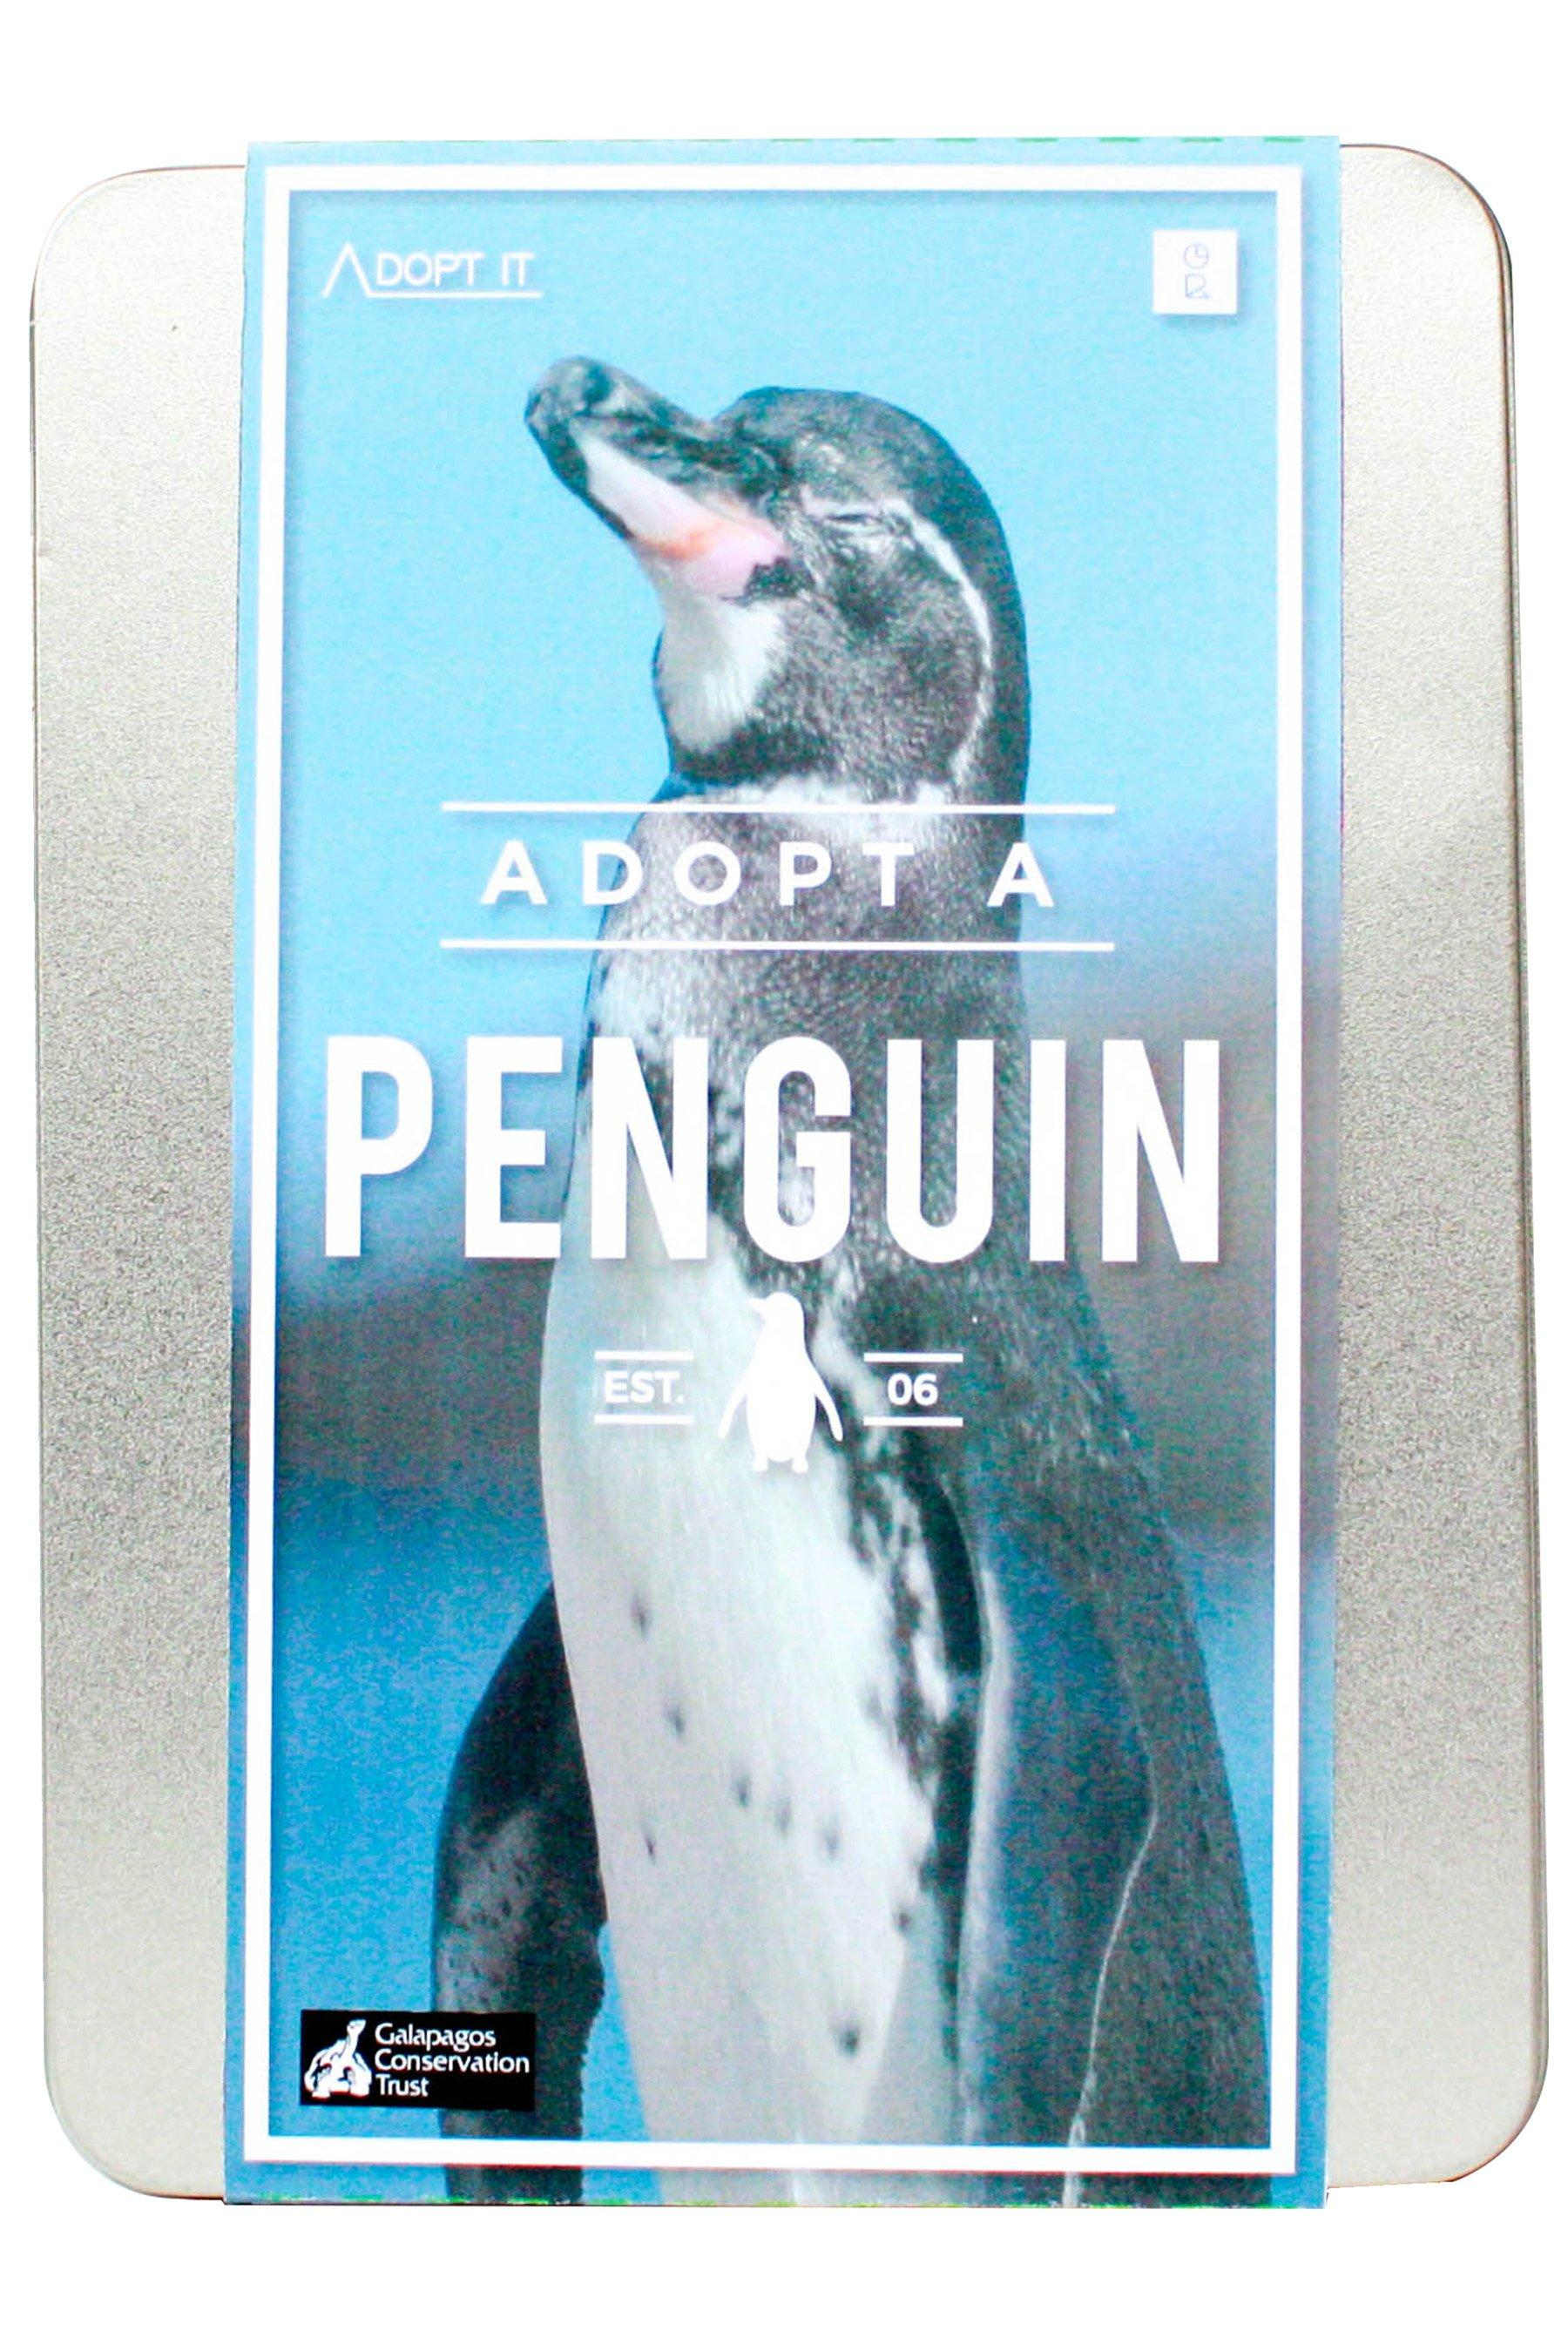 Compare prices for Adopt It - Adopt a Penguin